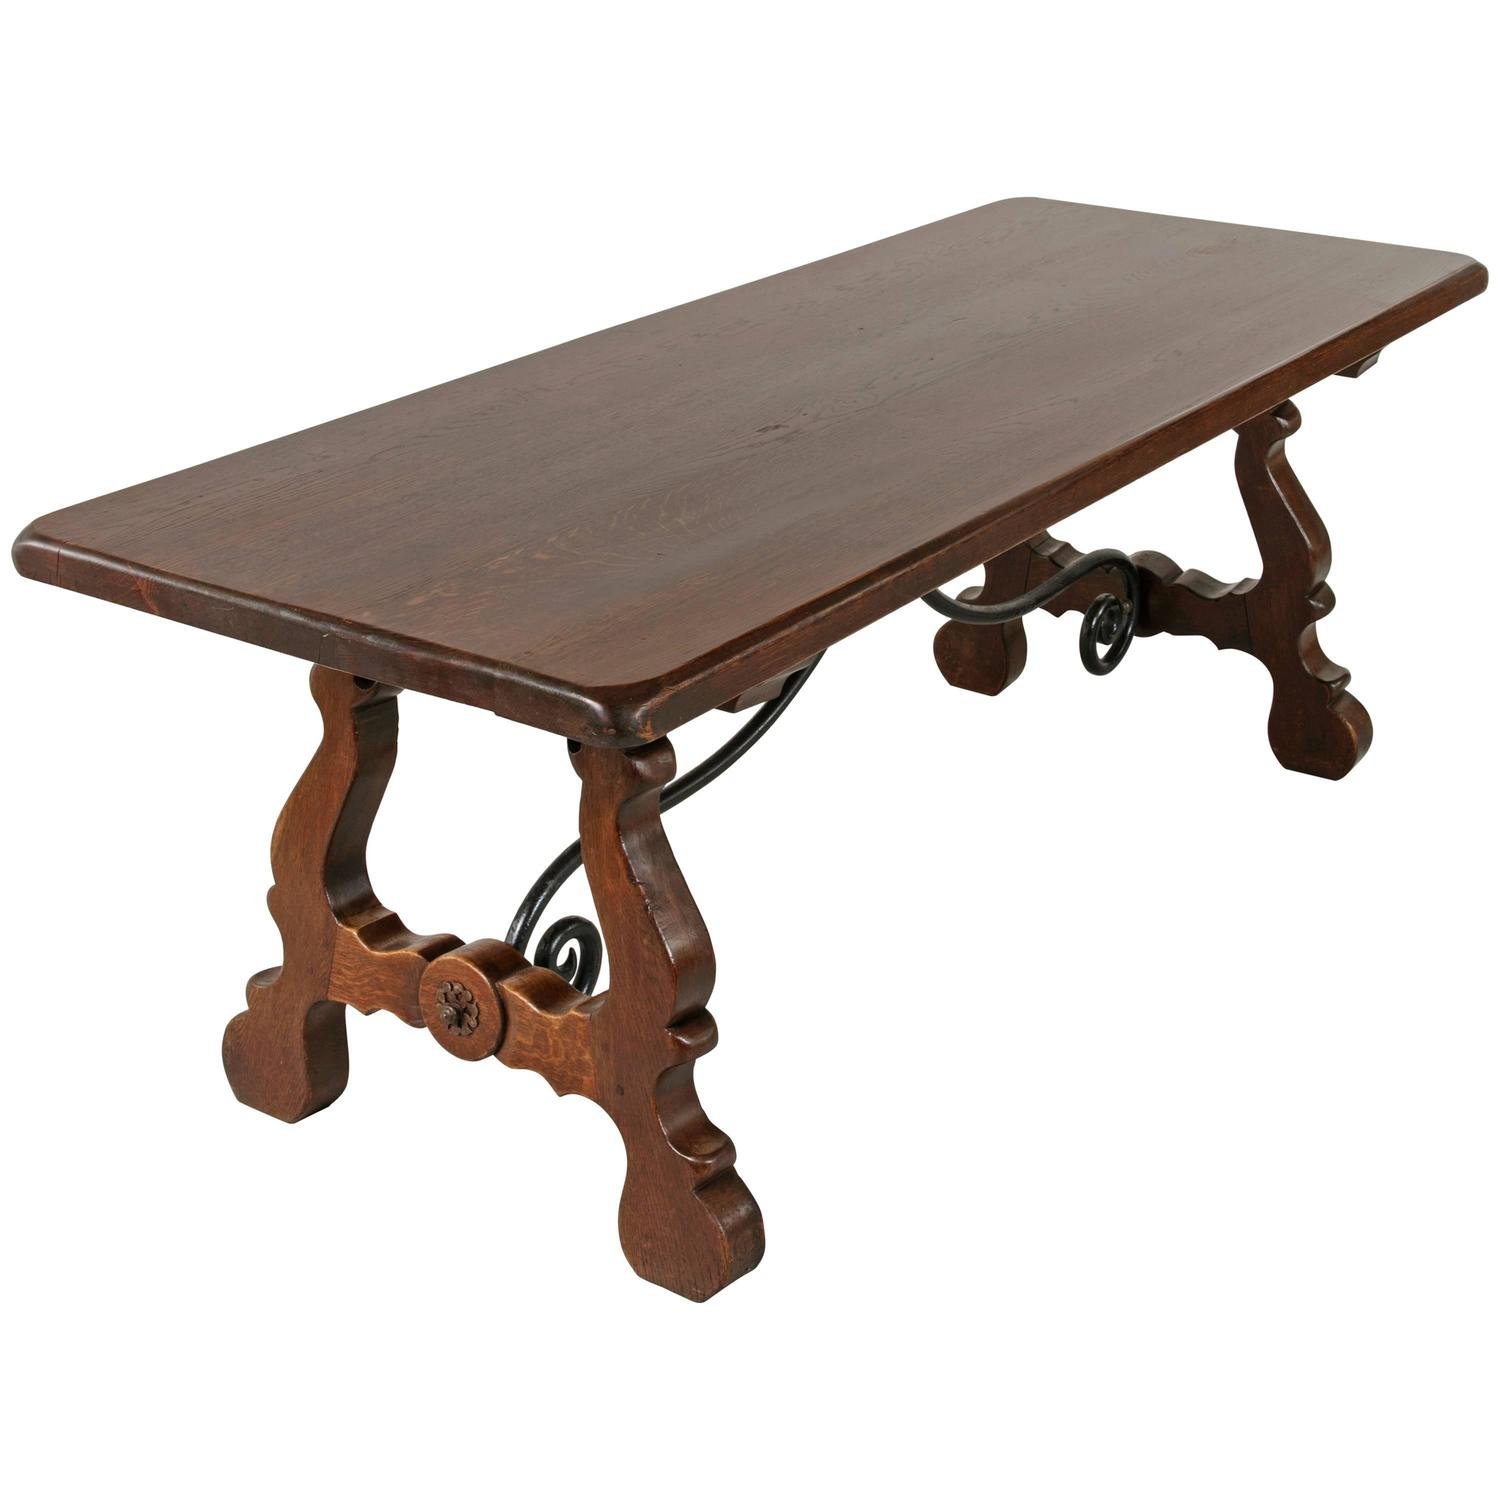 Antique spanish renaissance style dining table of solid for Table in spanish